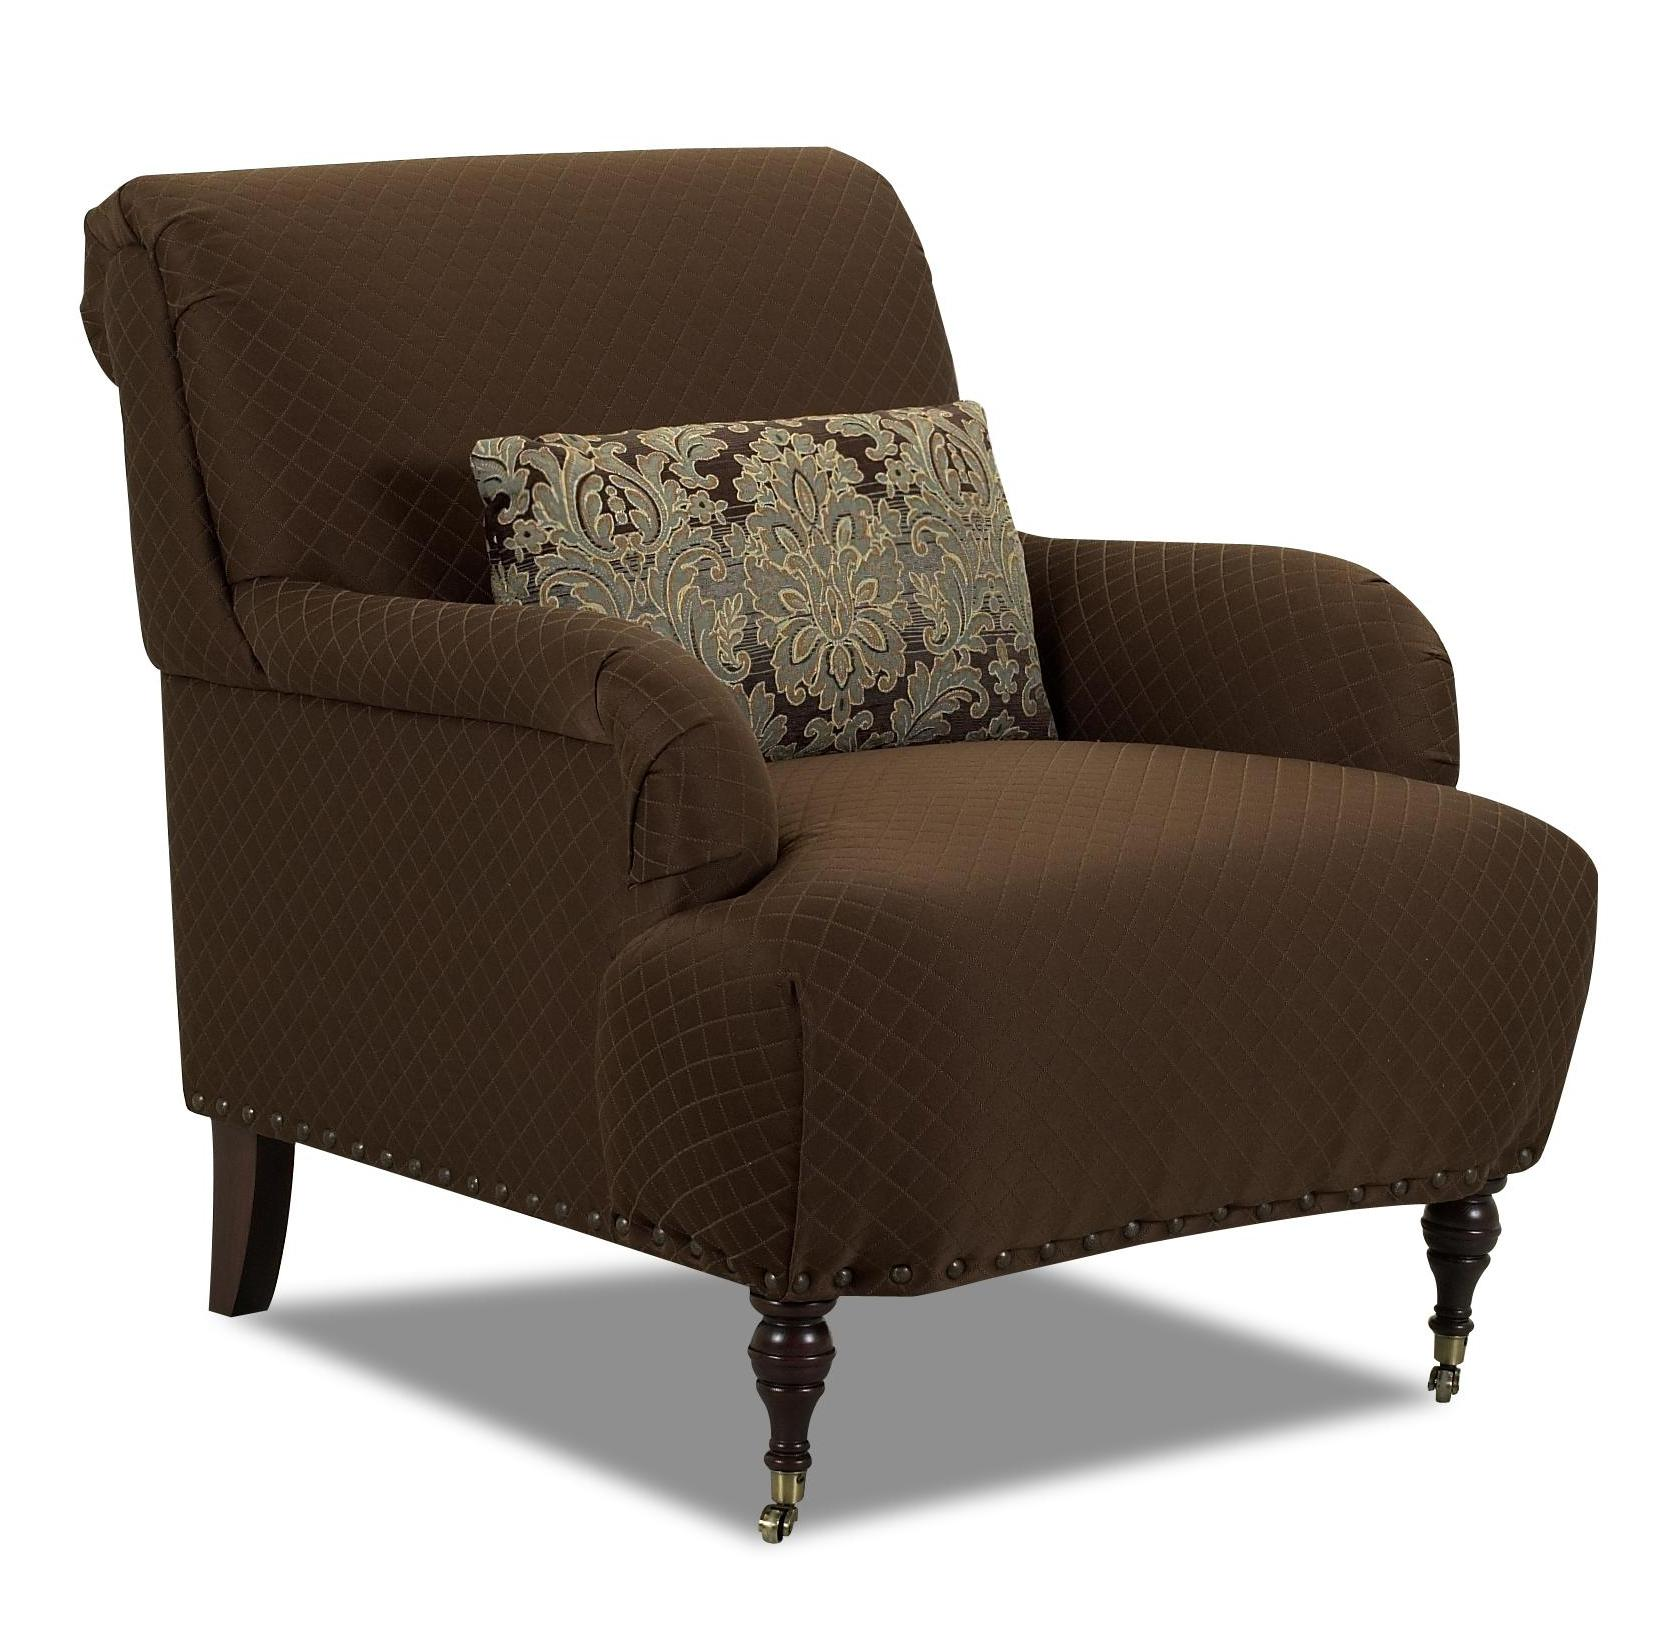 Klaussner Dapper Traditional Accent Chair With English